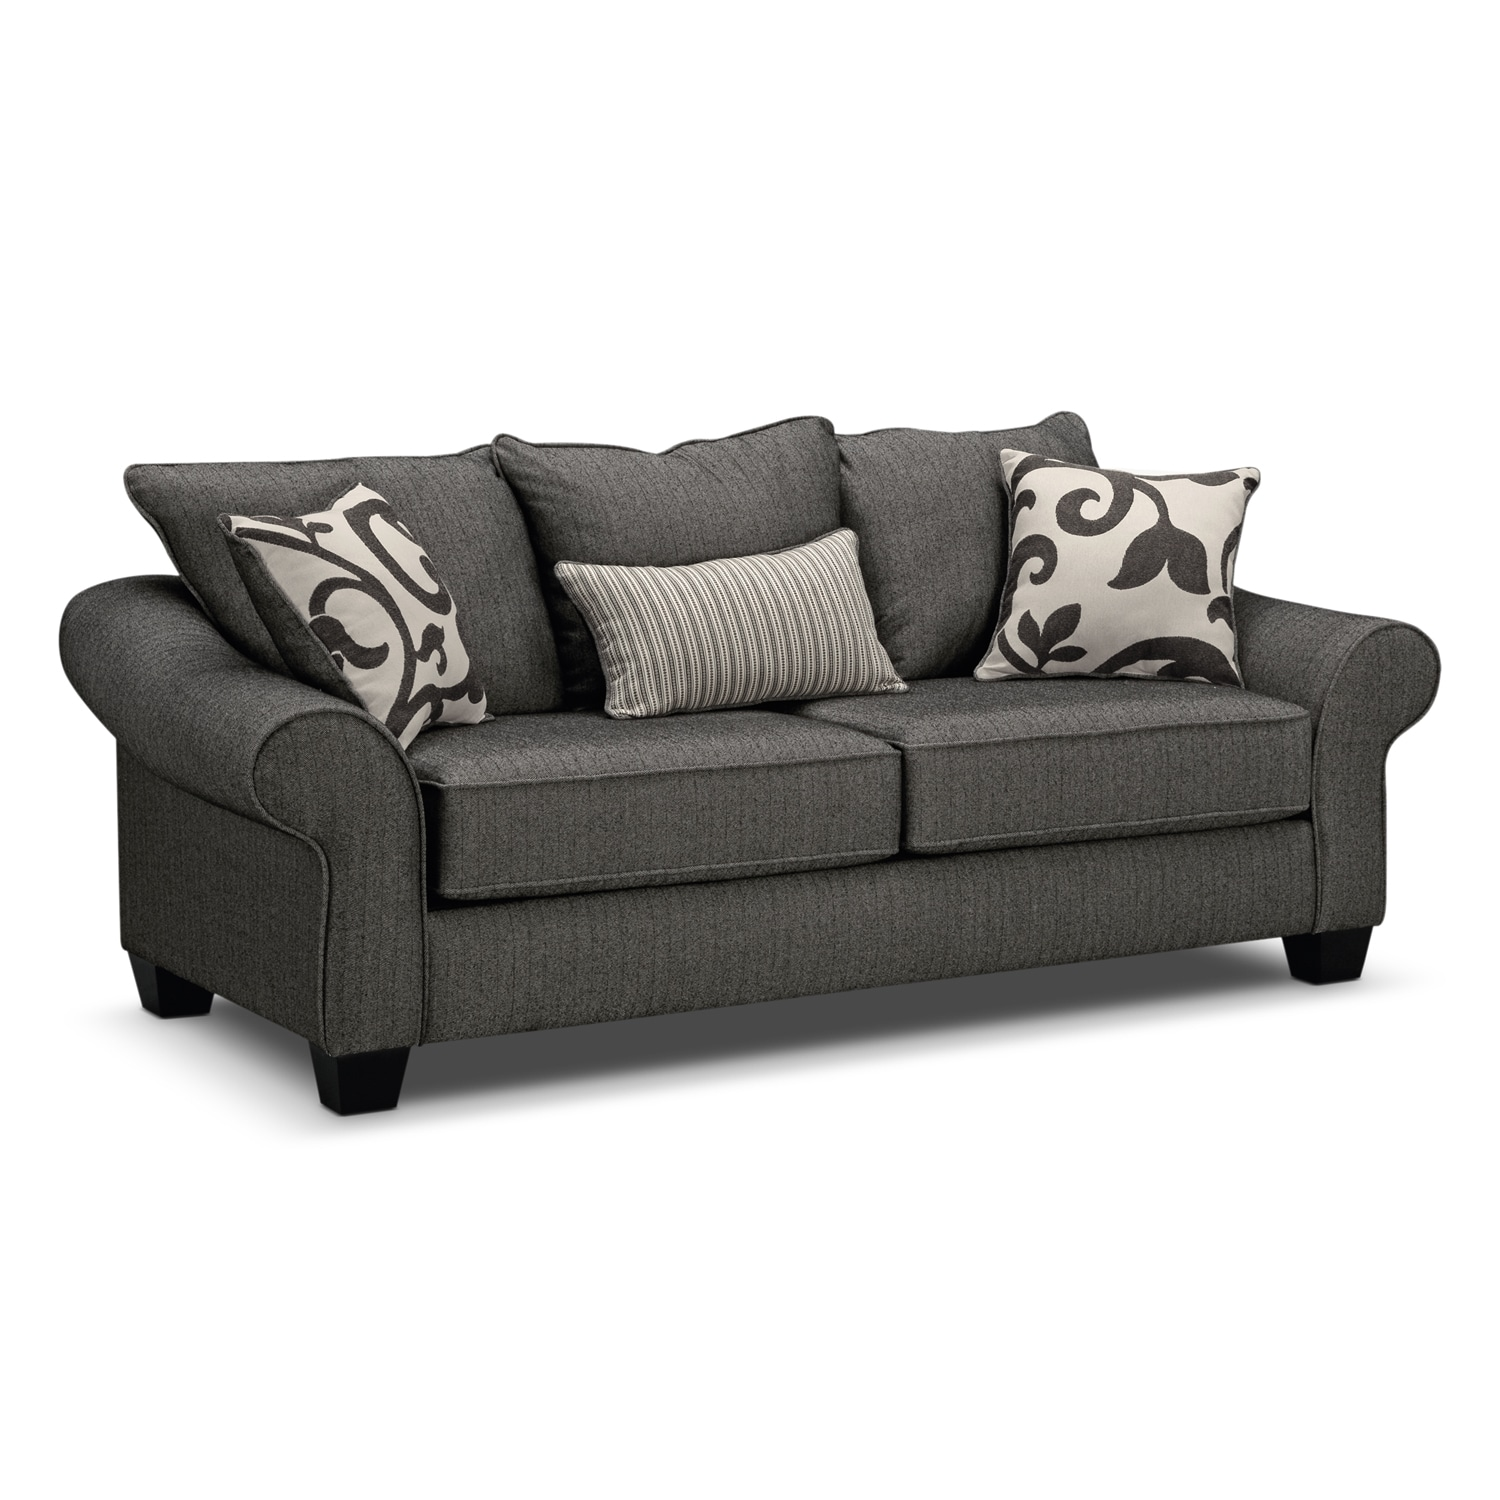 Colette Full Memory Foam Sleeper Sofa Gray Value City